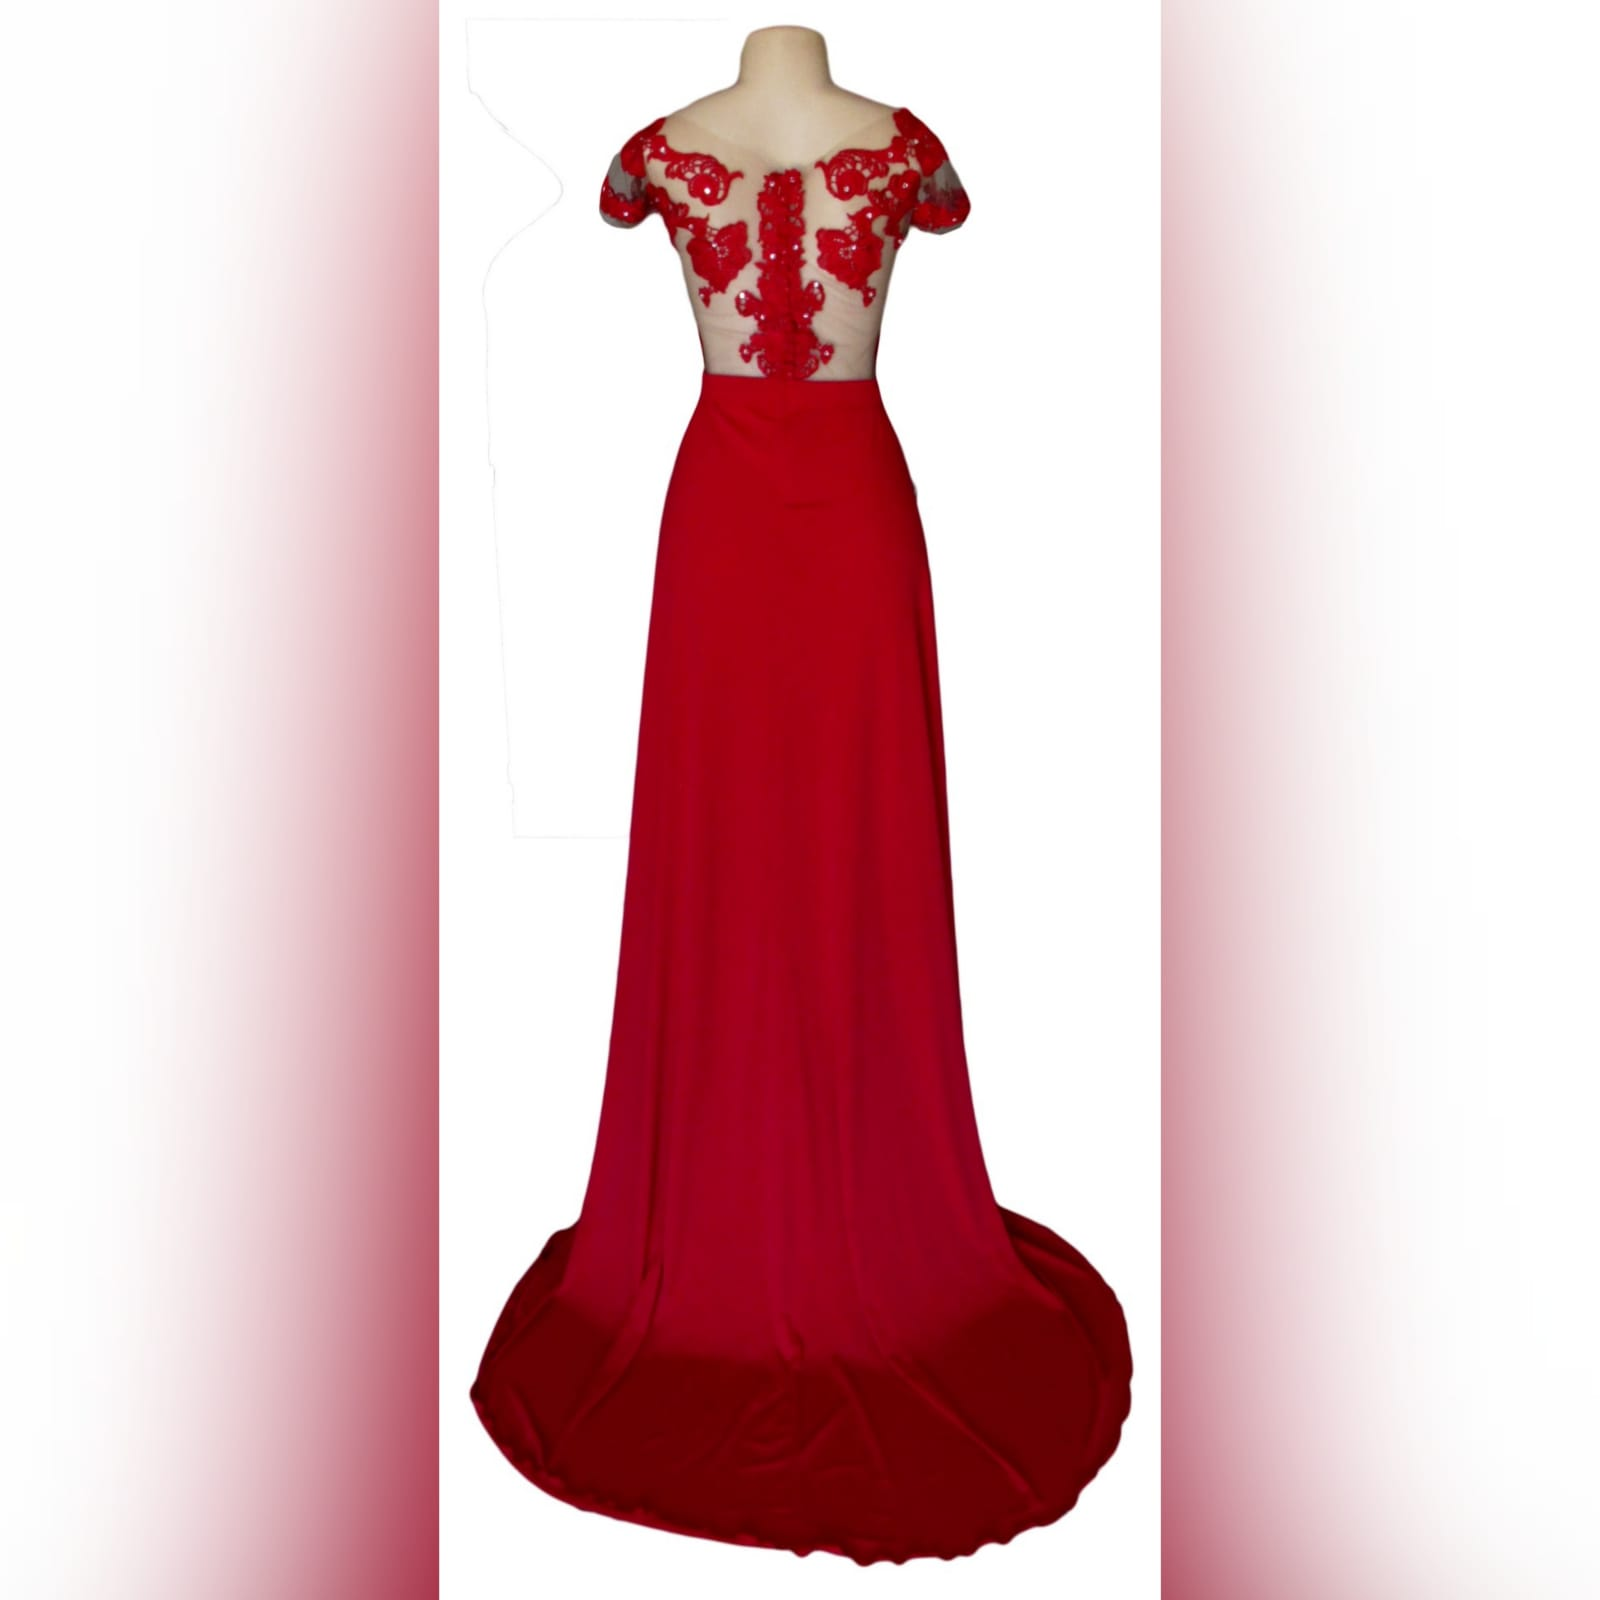 Red flowy lace bodice prom dress 3 red flowy lace bodice prom dress. With an illusion lace bodice detailed with silver beads and buttons. Evening dress with a slit and a train.